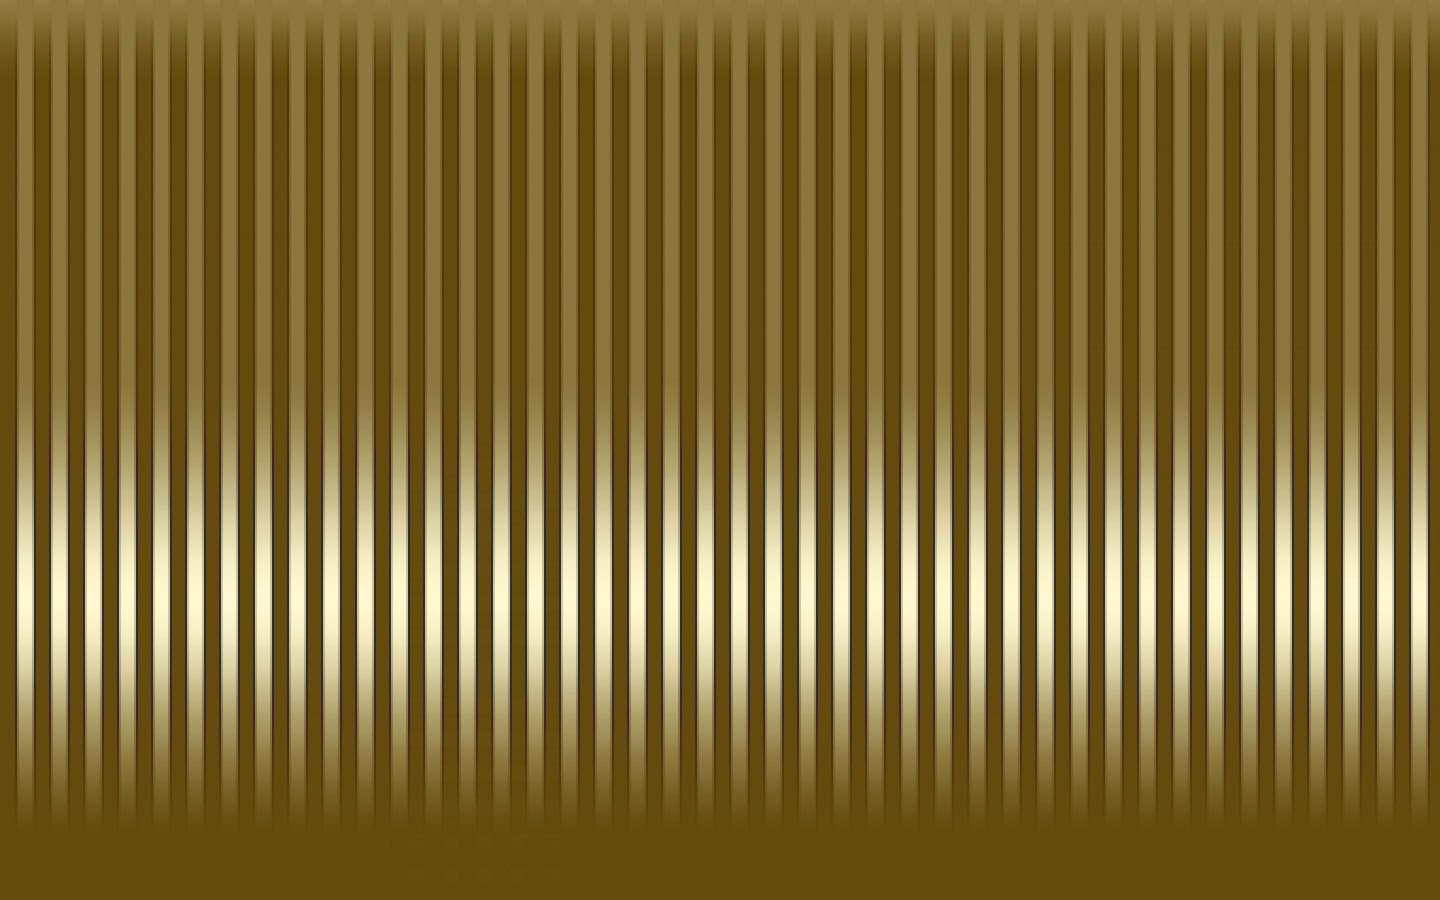 Gold And Black Striped Wallpaper Link golden line stripe 1440x900